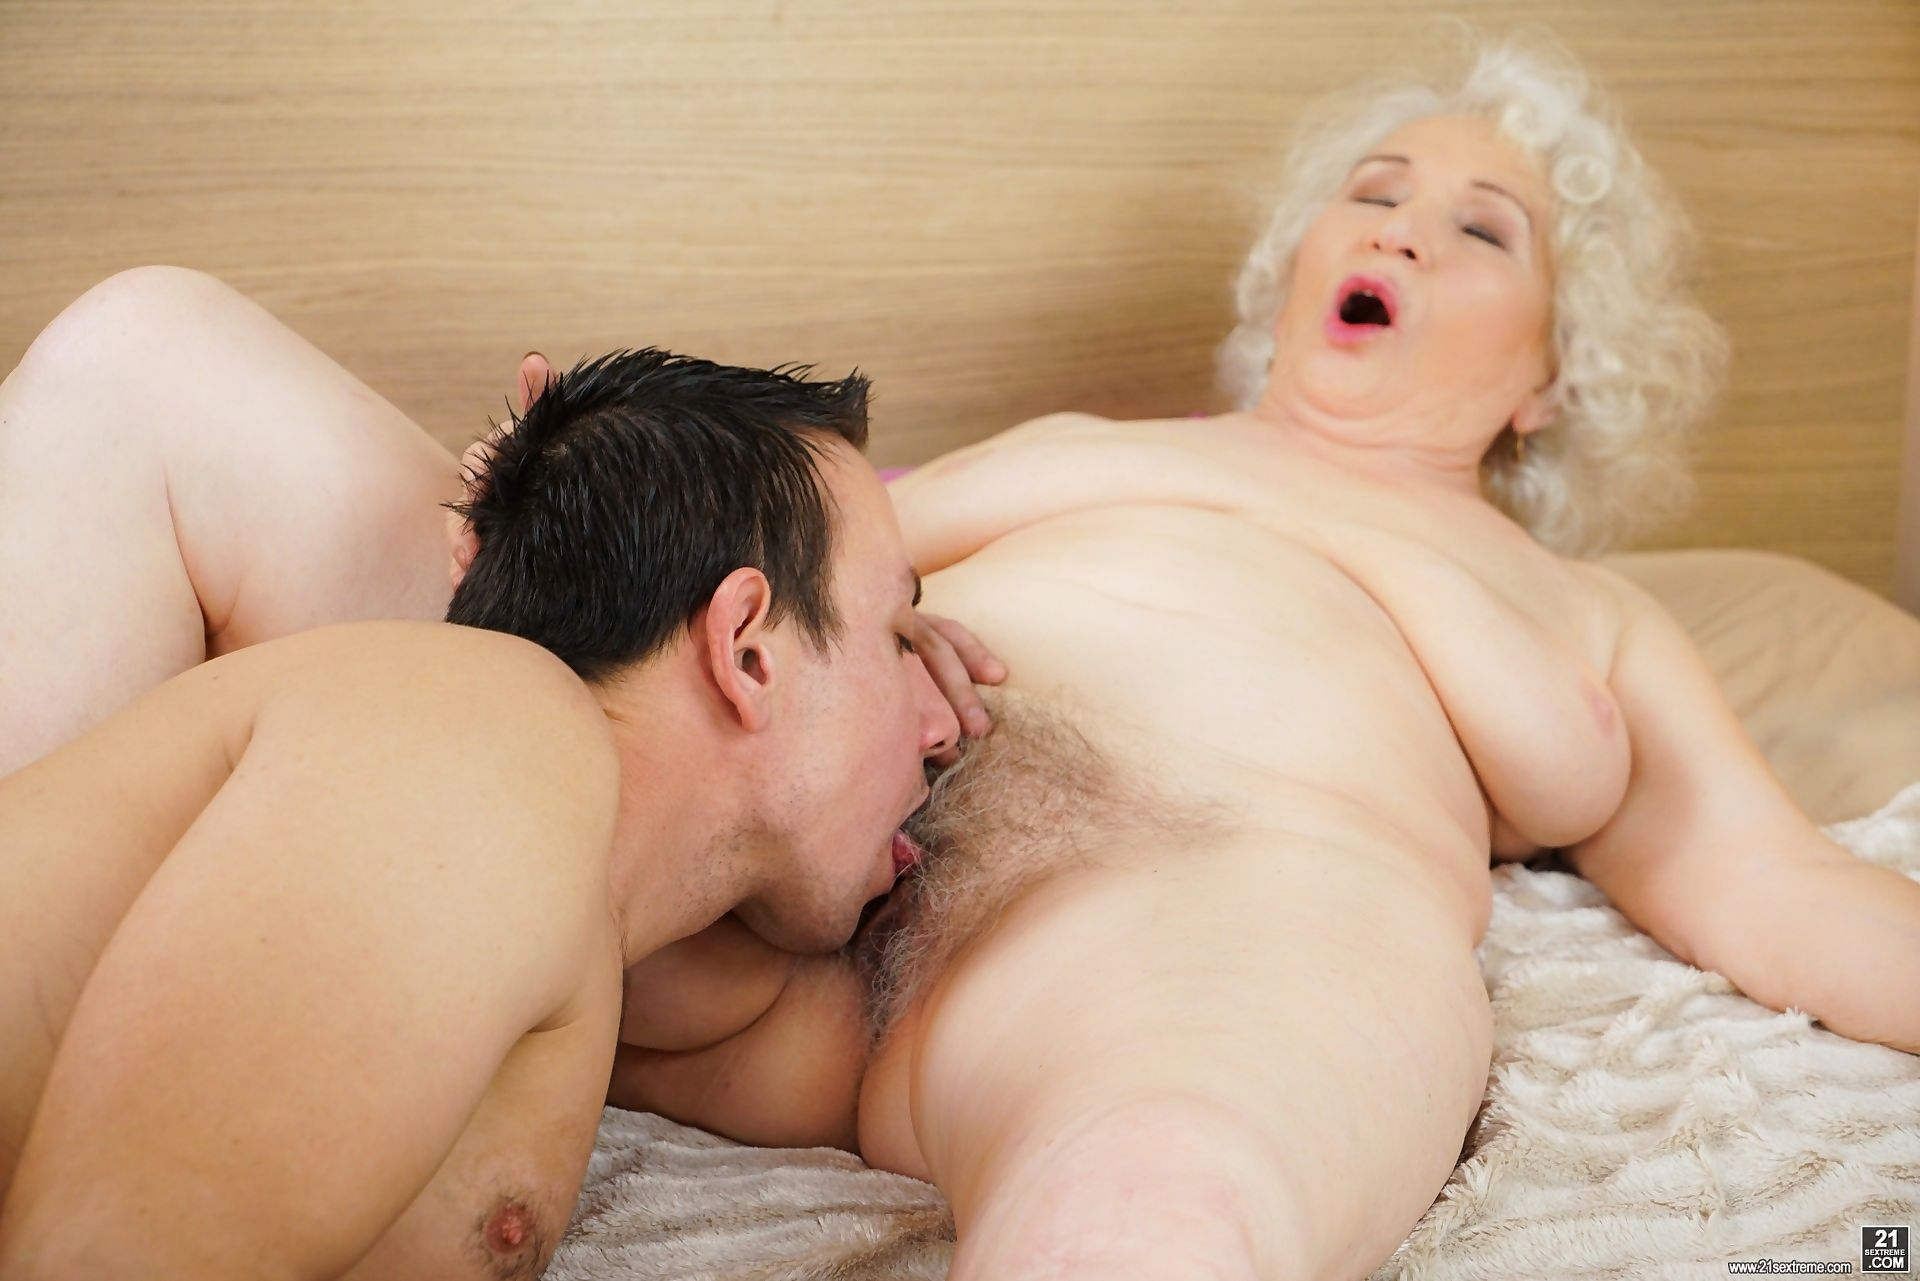 Busty granny norma knows that his young hard dick can satisfy her vintage treasu - part 390